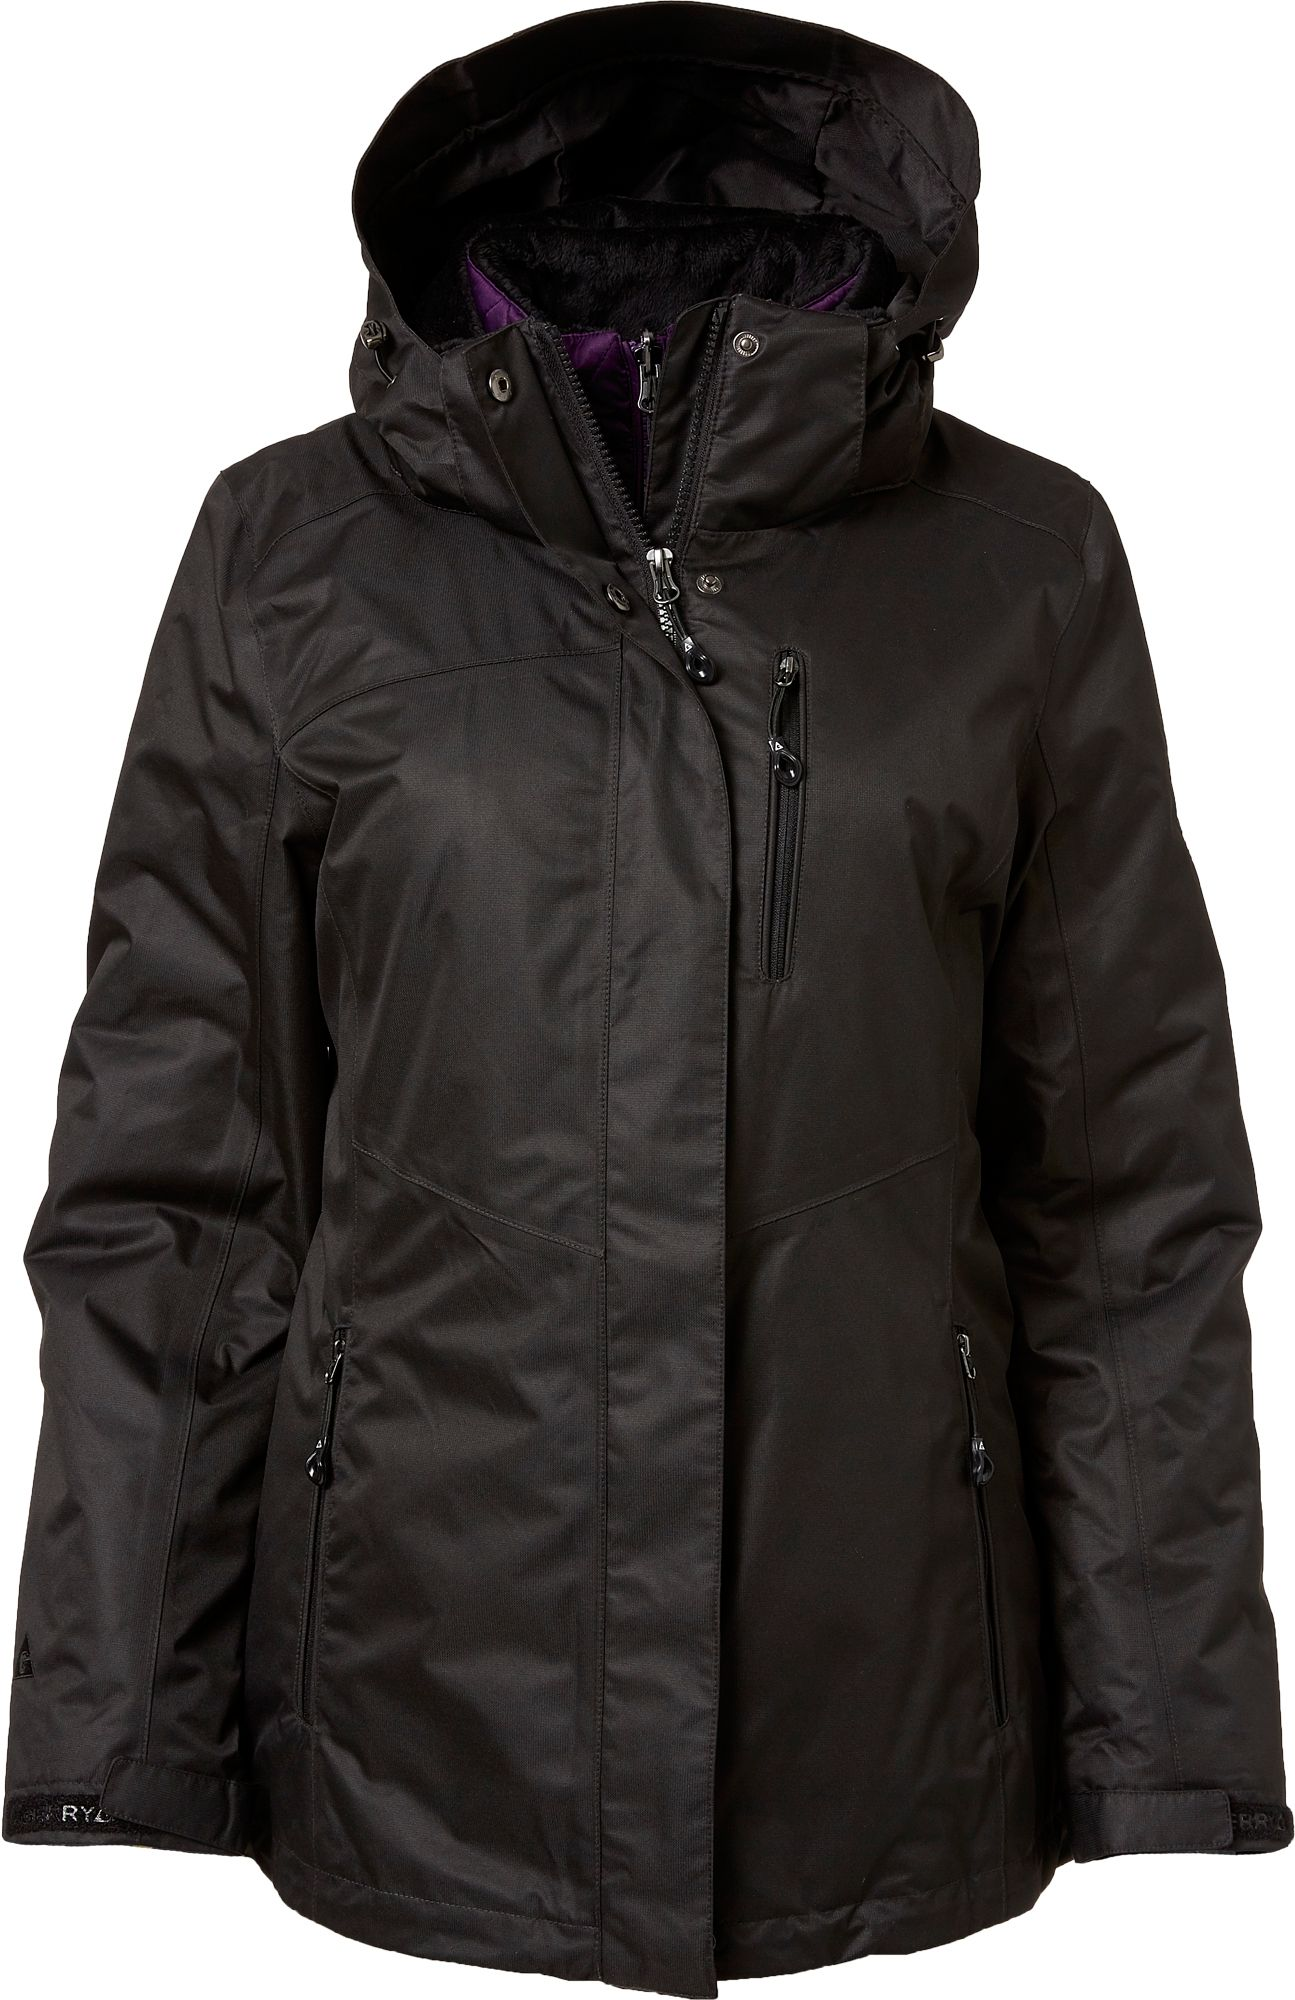 Gerry women's insulated jacket